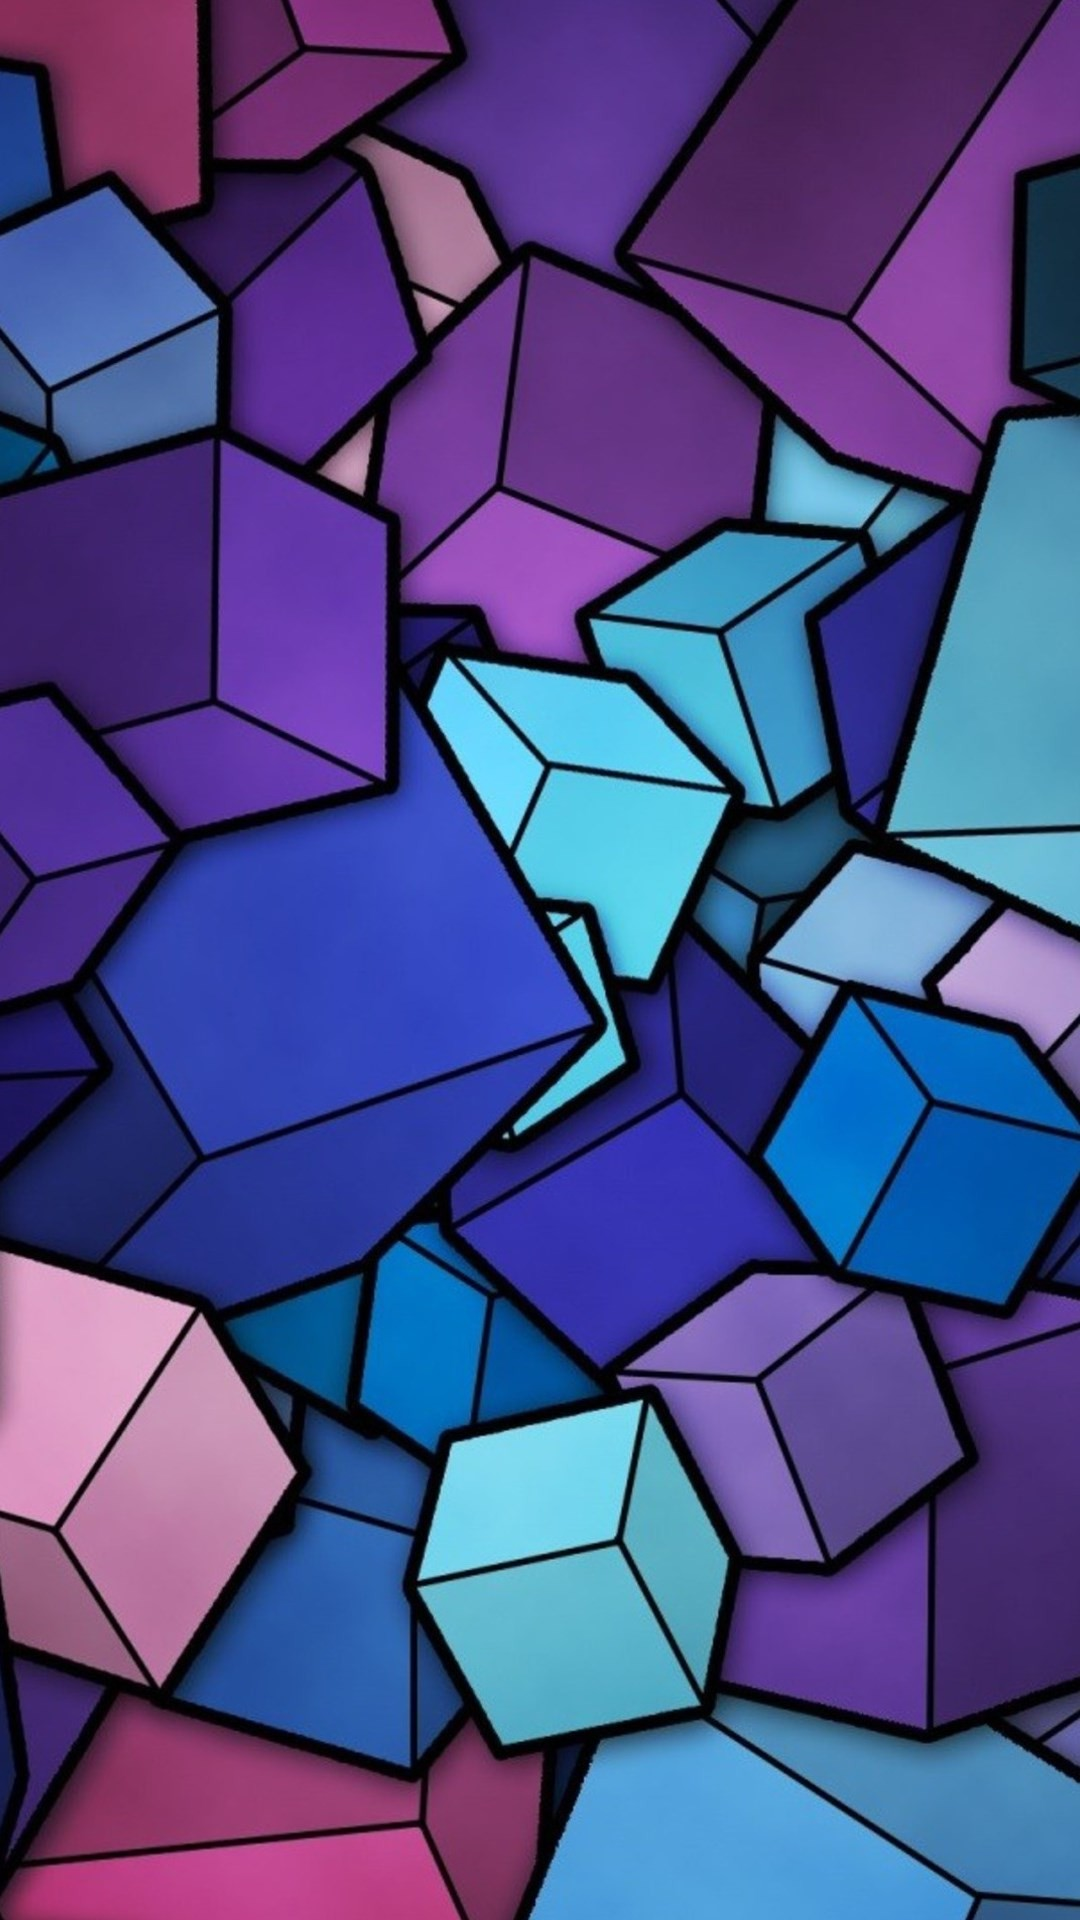 Abstract Blue Cyan Purple Cubes iPhone 6 Plus HD Wallpaper …